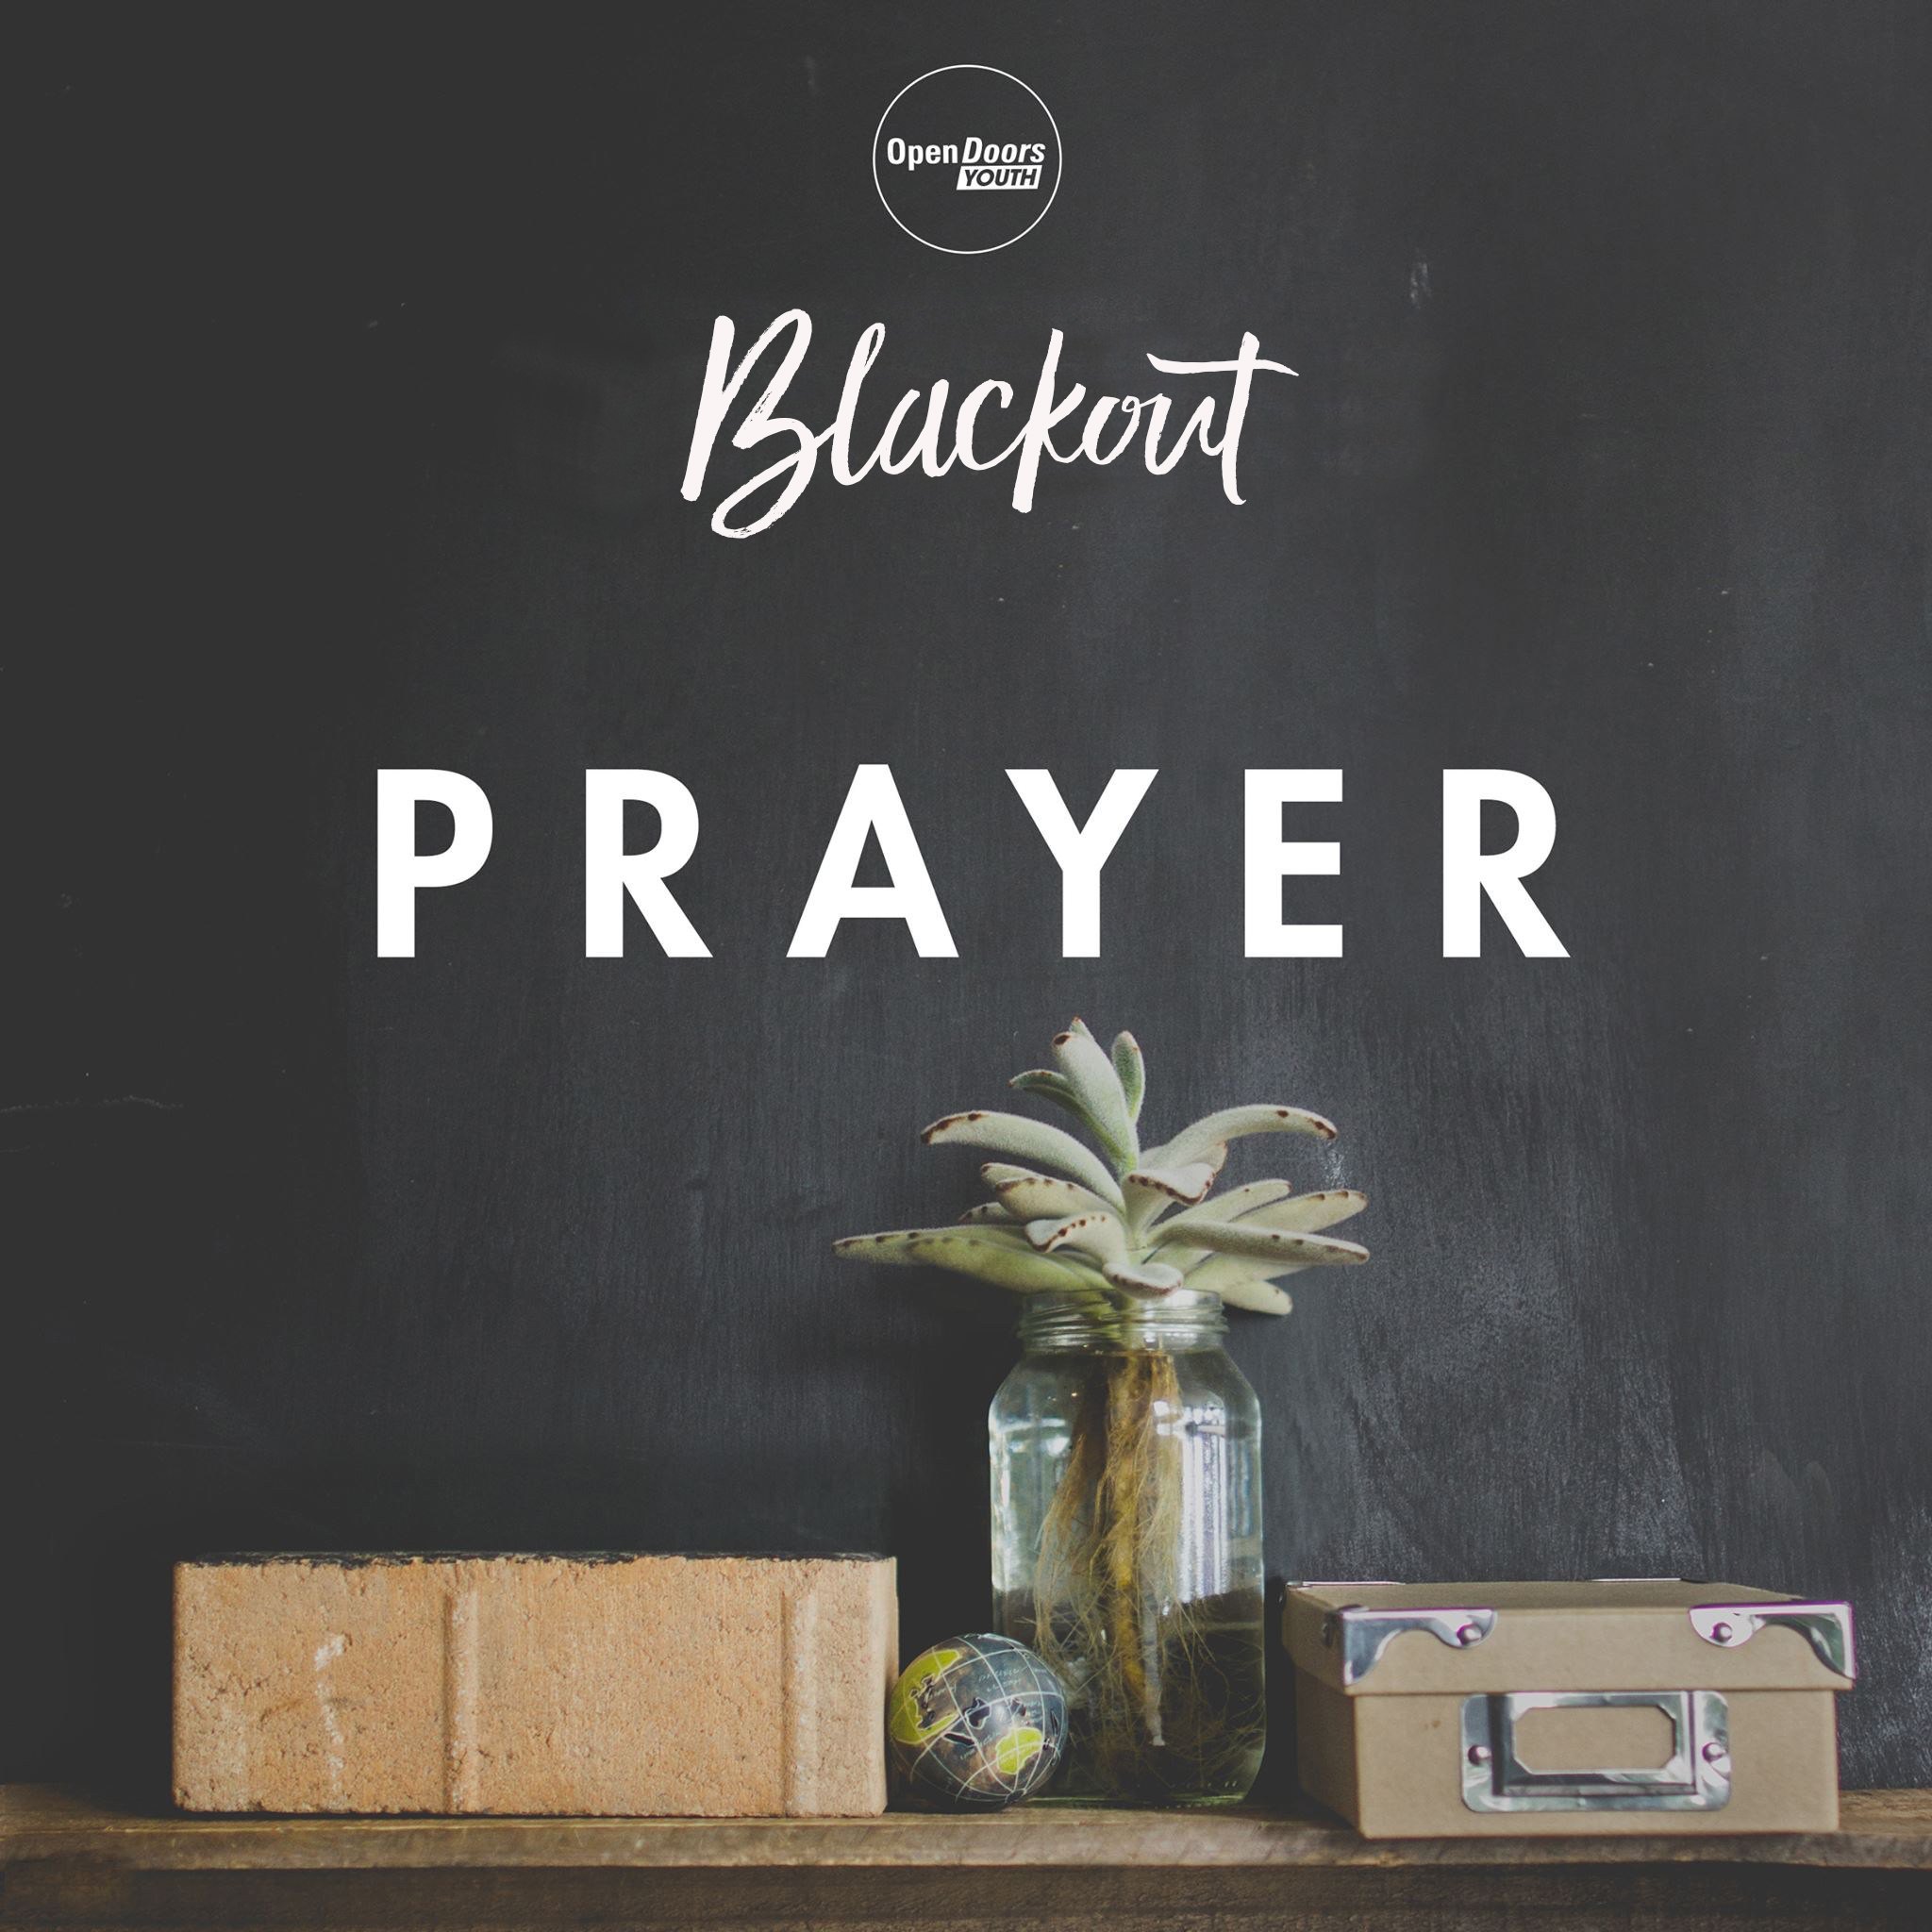 bo_prayer2